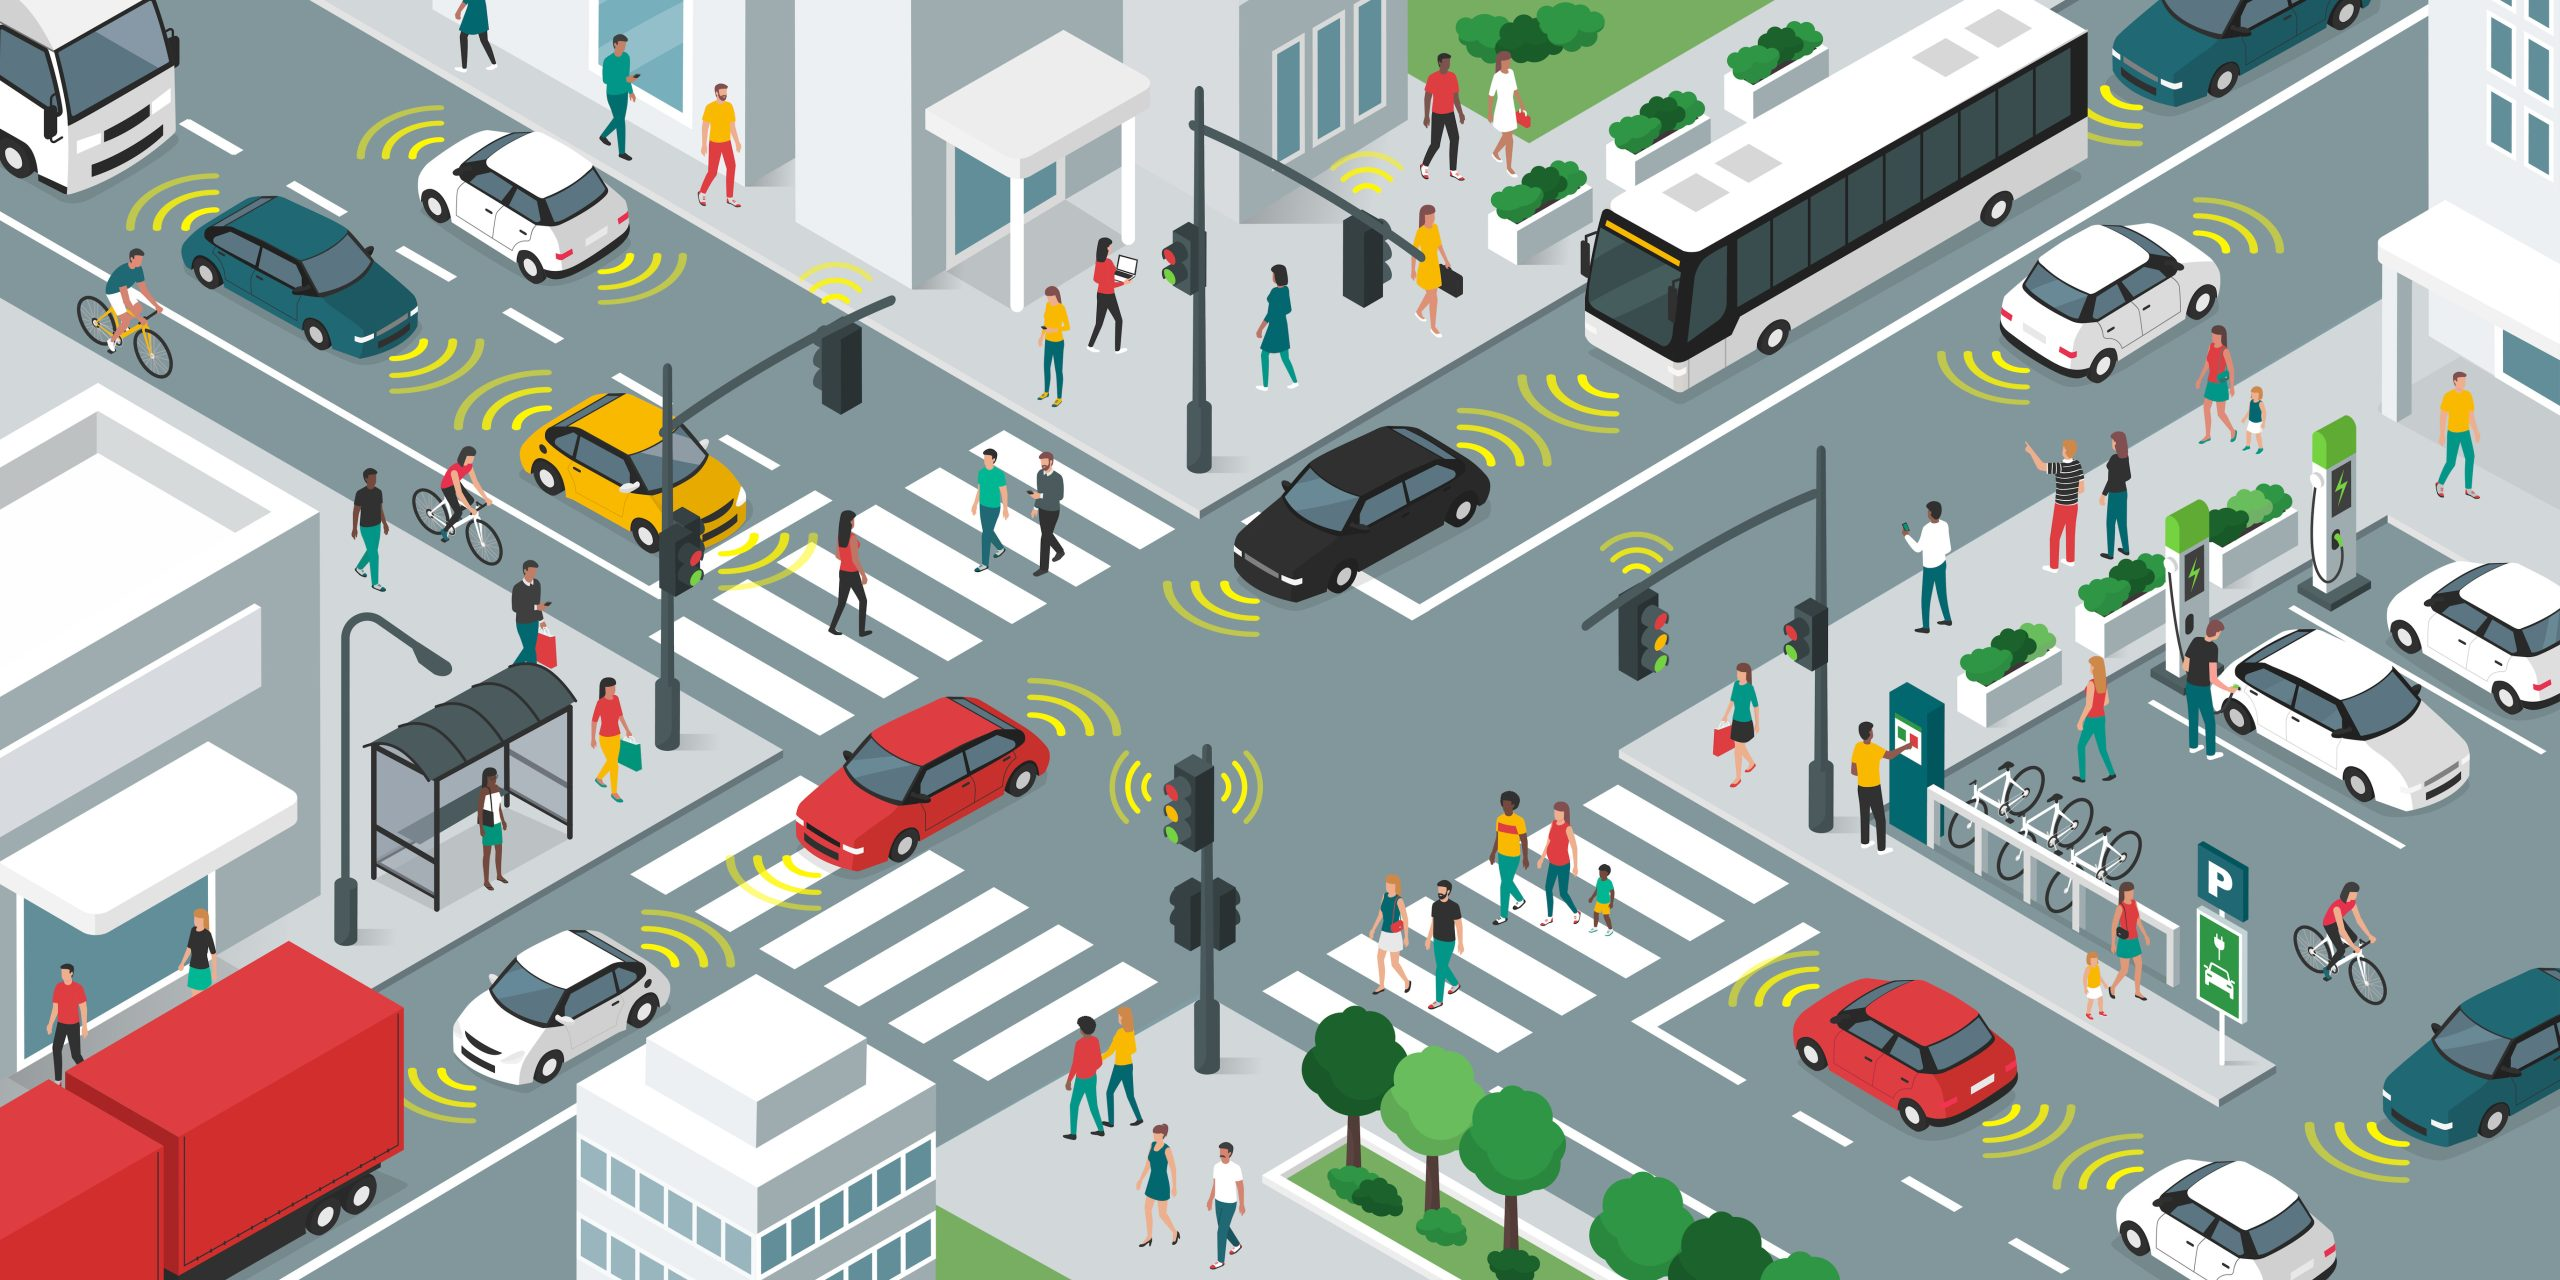 IoT City Image Featured Image on Article about Internet of Things enabled cities, personal electric vehicles and IOTA Access